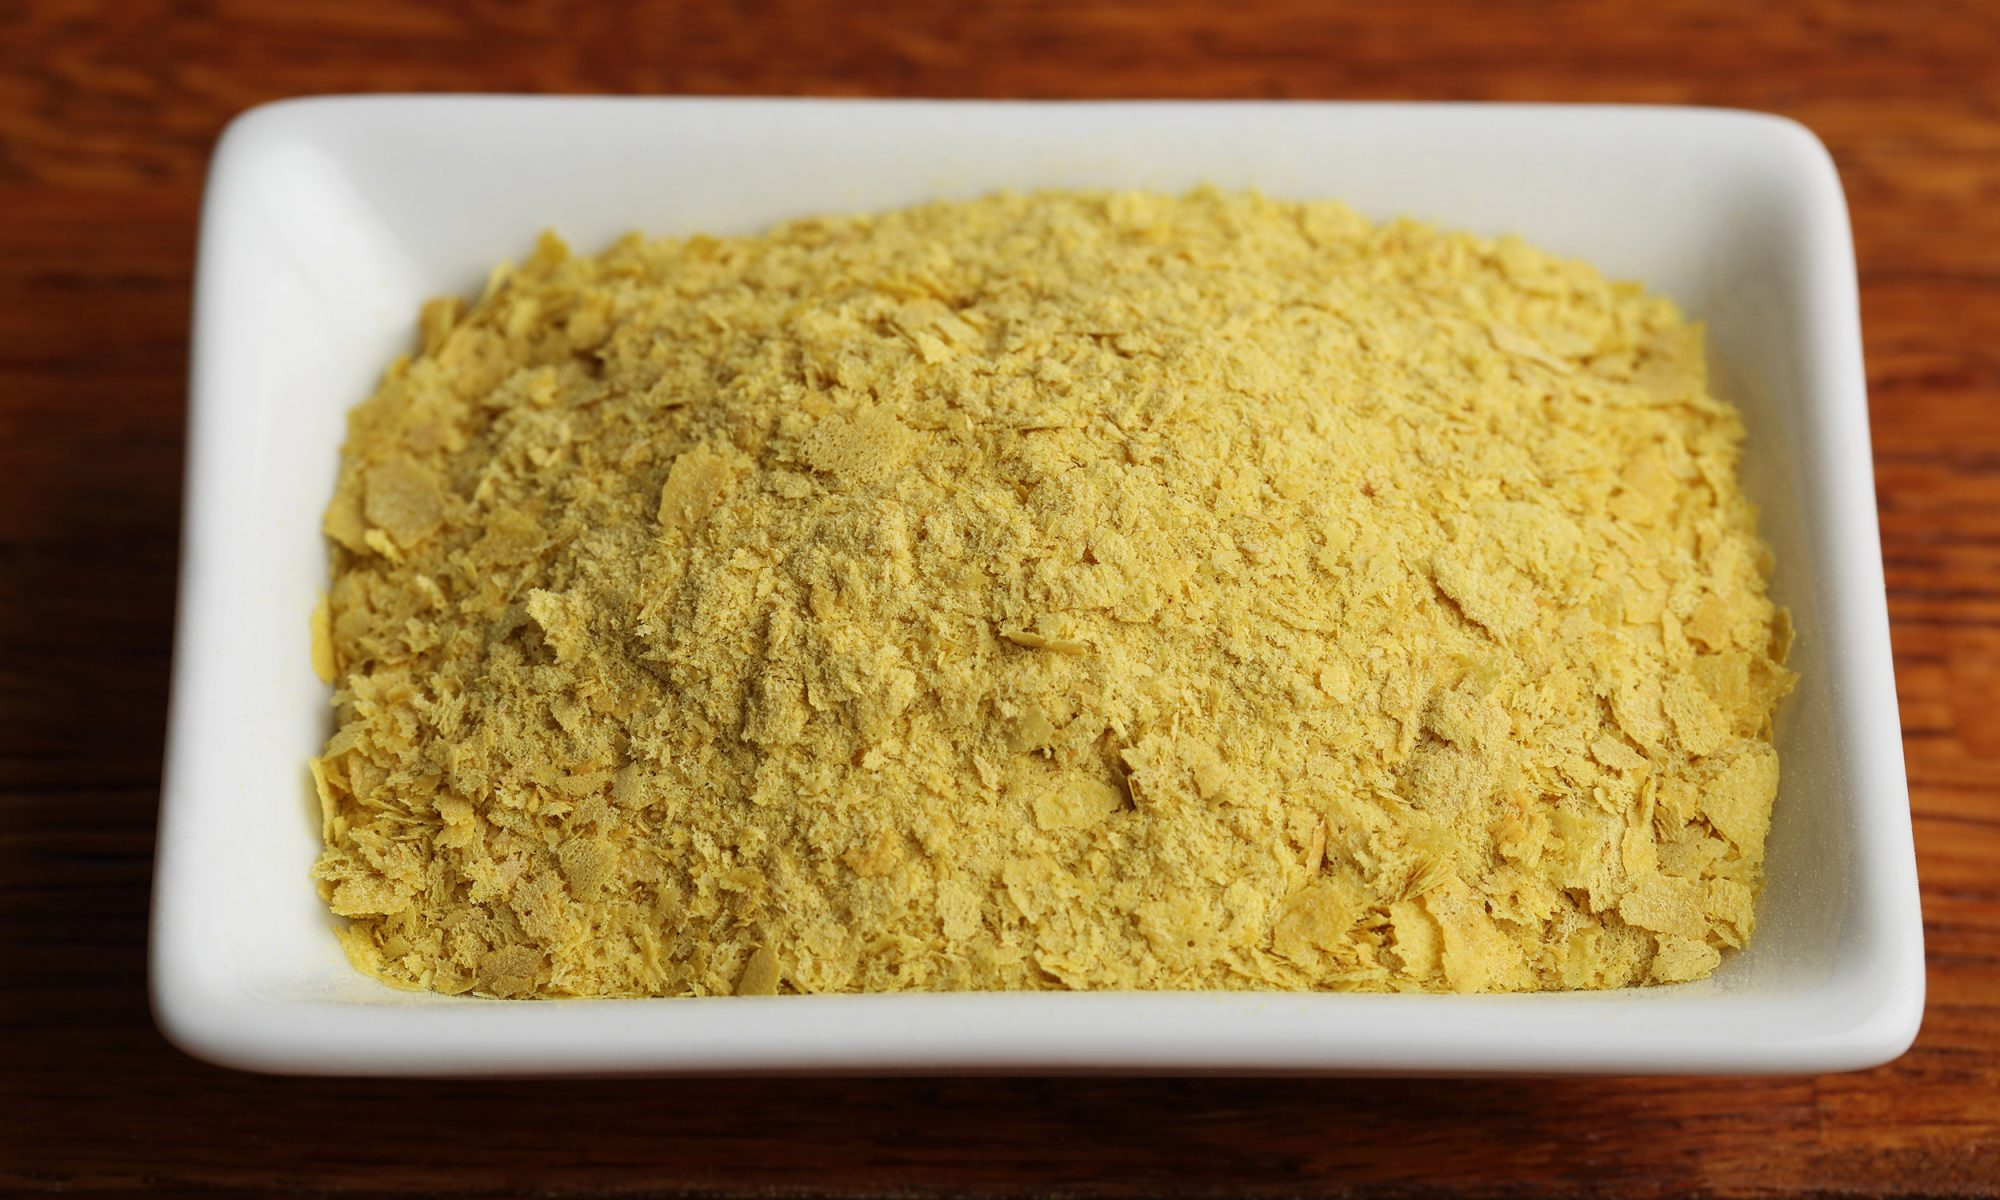 EC: A Defense of Nutritional Yeast